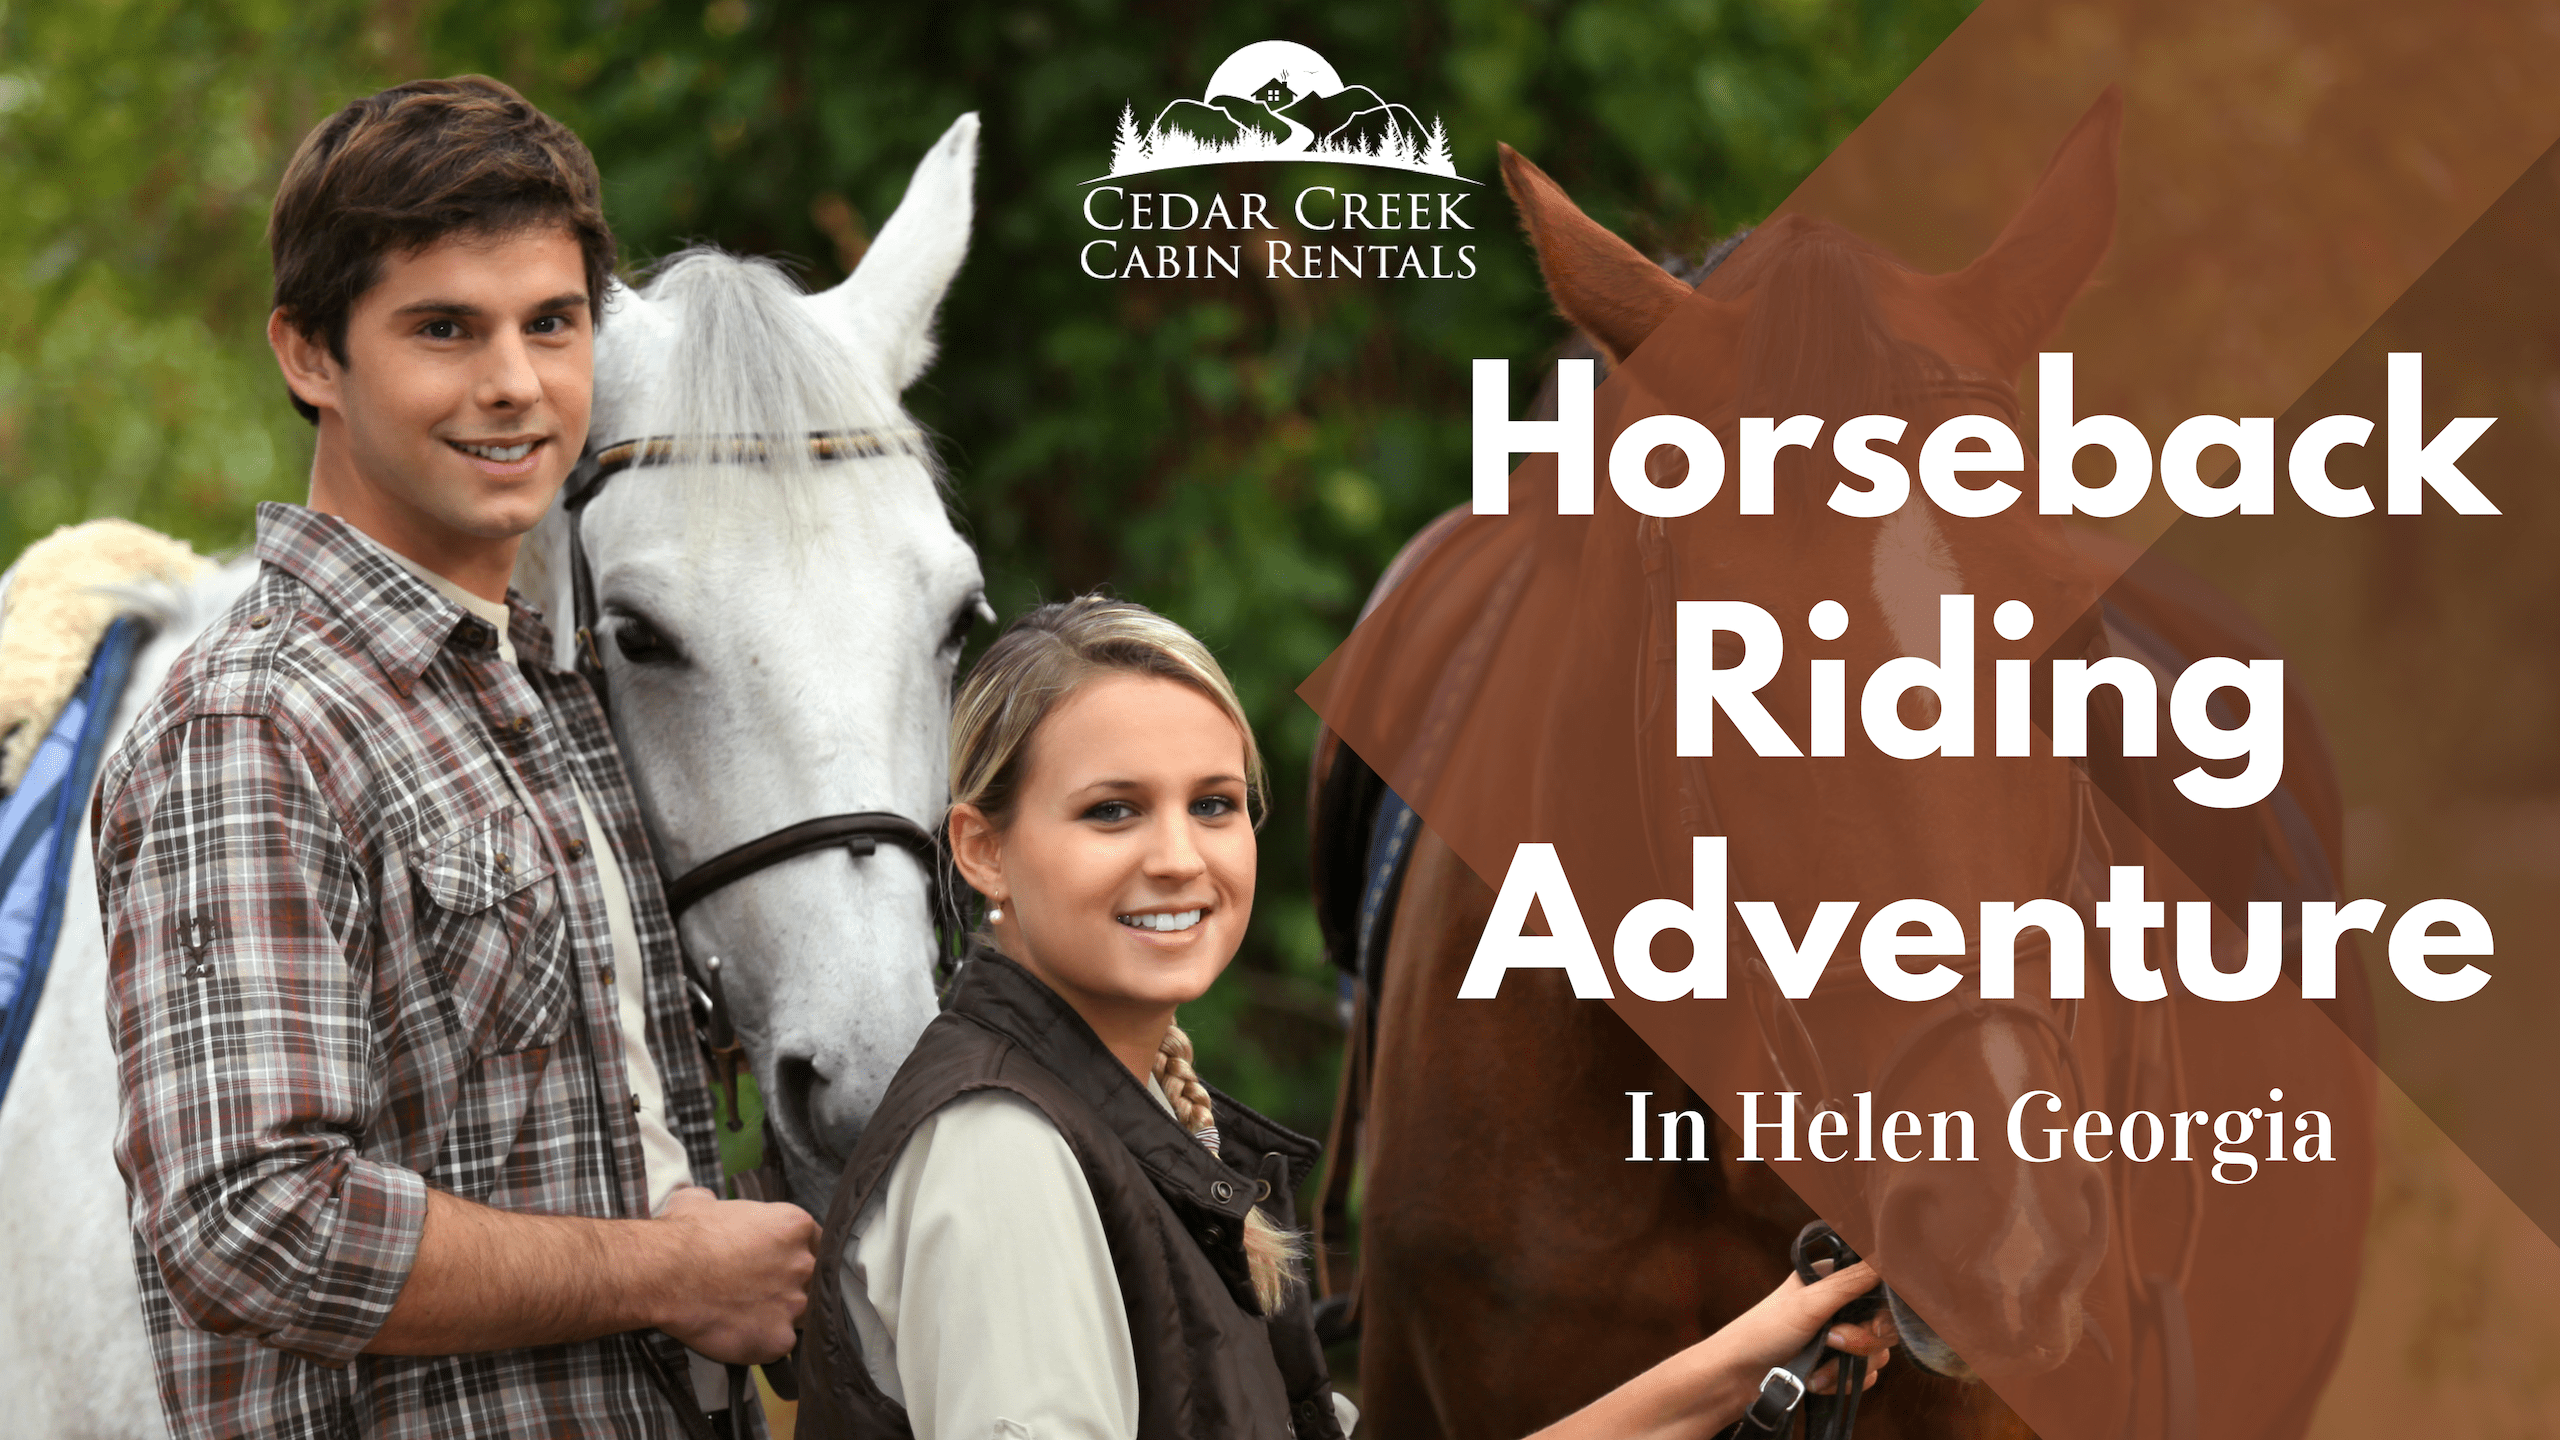 Horseback Riding In Helen Georgia - Where To Go For The Best